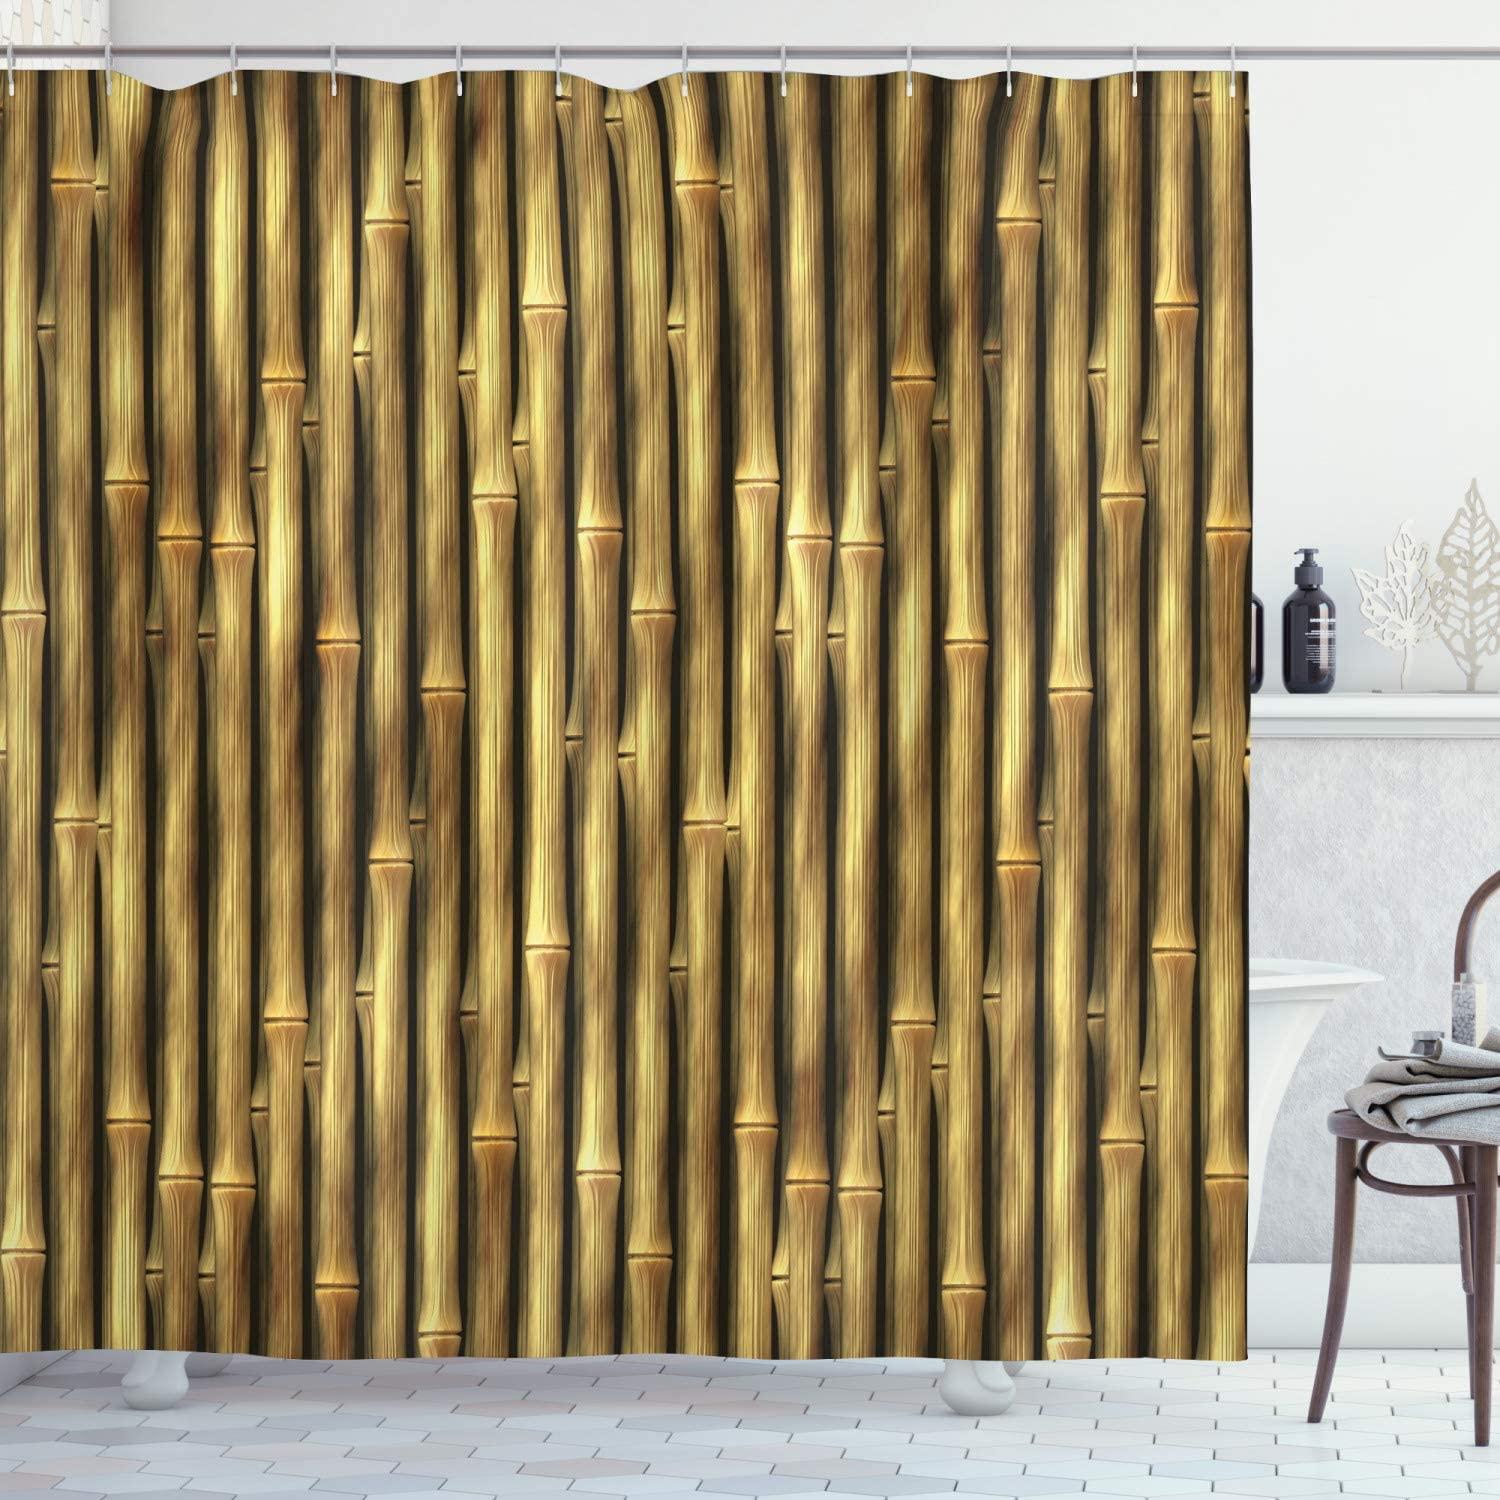 """Ambesonne Beige Shower Curtain, Tropical Bamboo Poles Woody Grass Tall Thin Harvest Natural Artprint, Cloth Fabric Bathroom Decor Set with Hooks, 84"""" Long Extra, Yellow"""